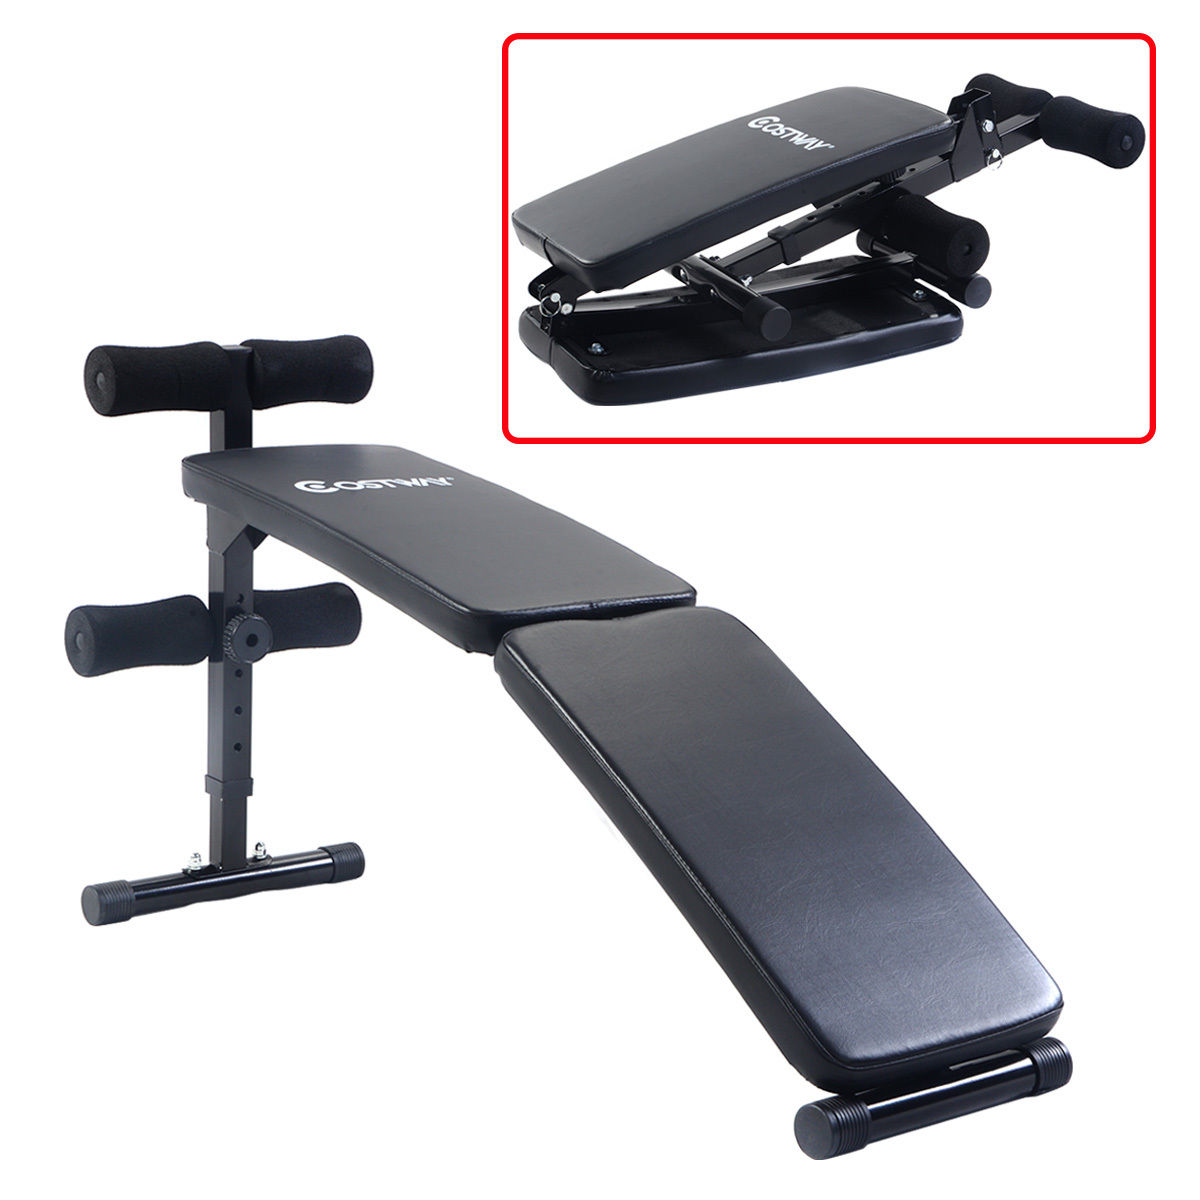 Costway Adjustable Folding Arc Shaped Sit Up Bench Gym Home Exercise Fitness Workout Walmart Com